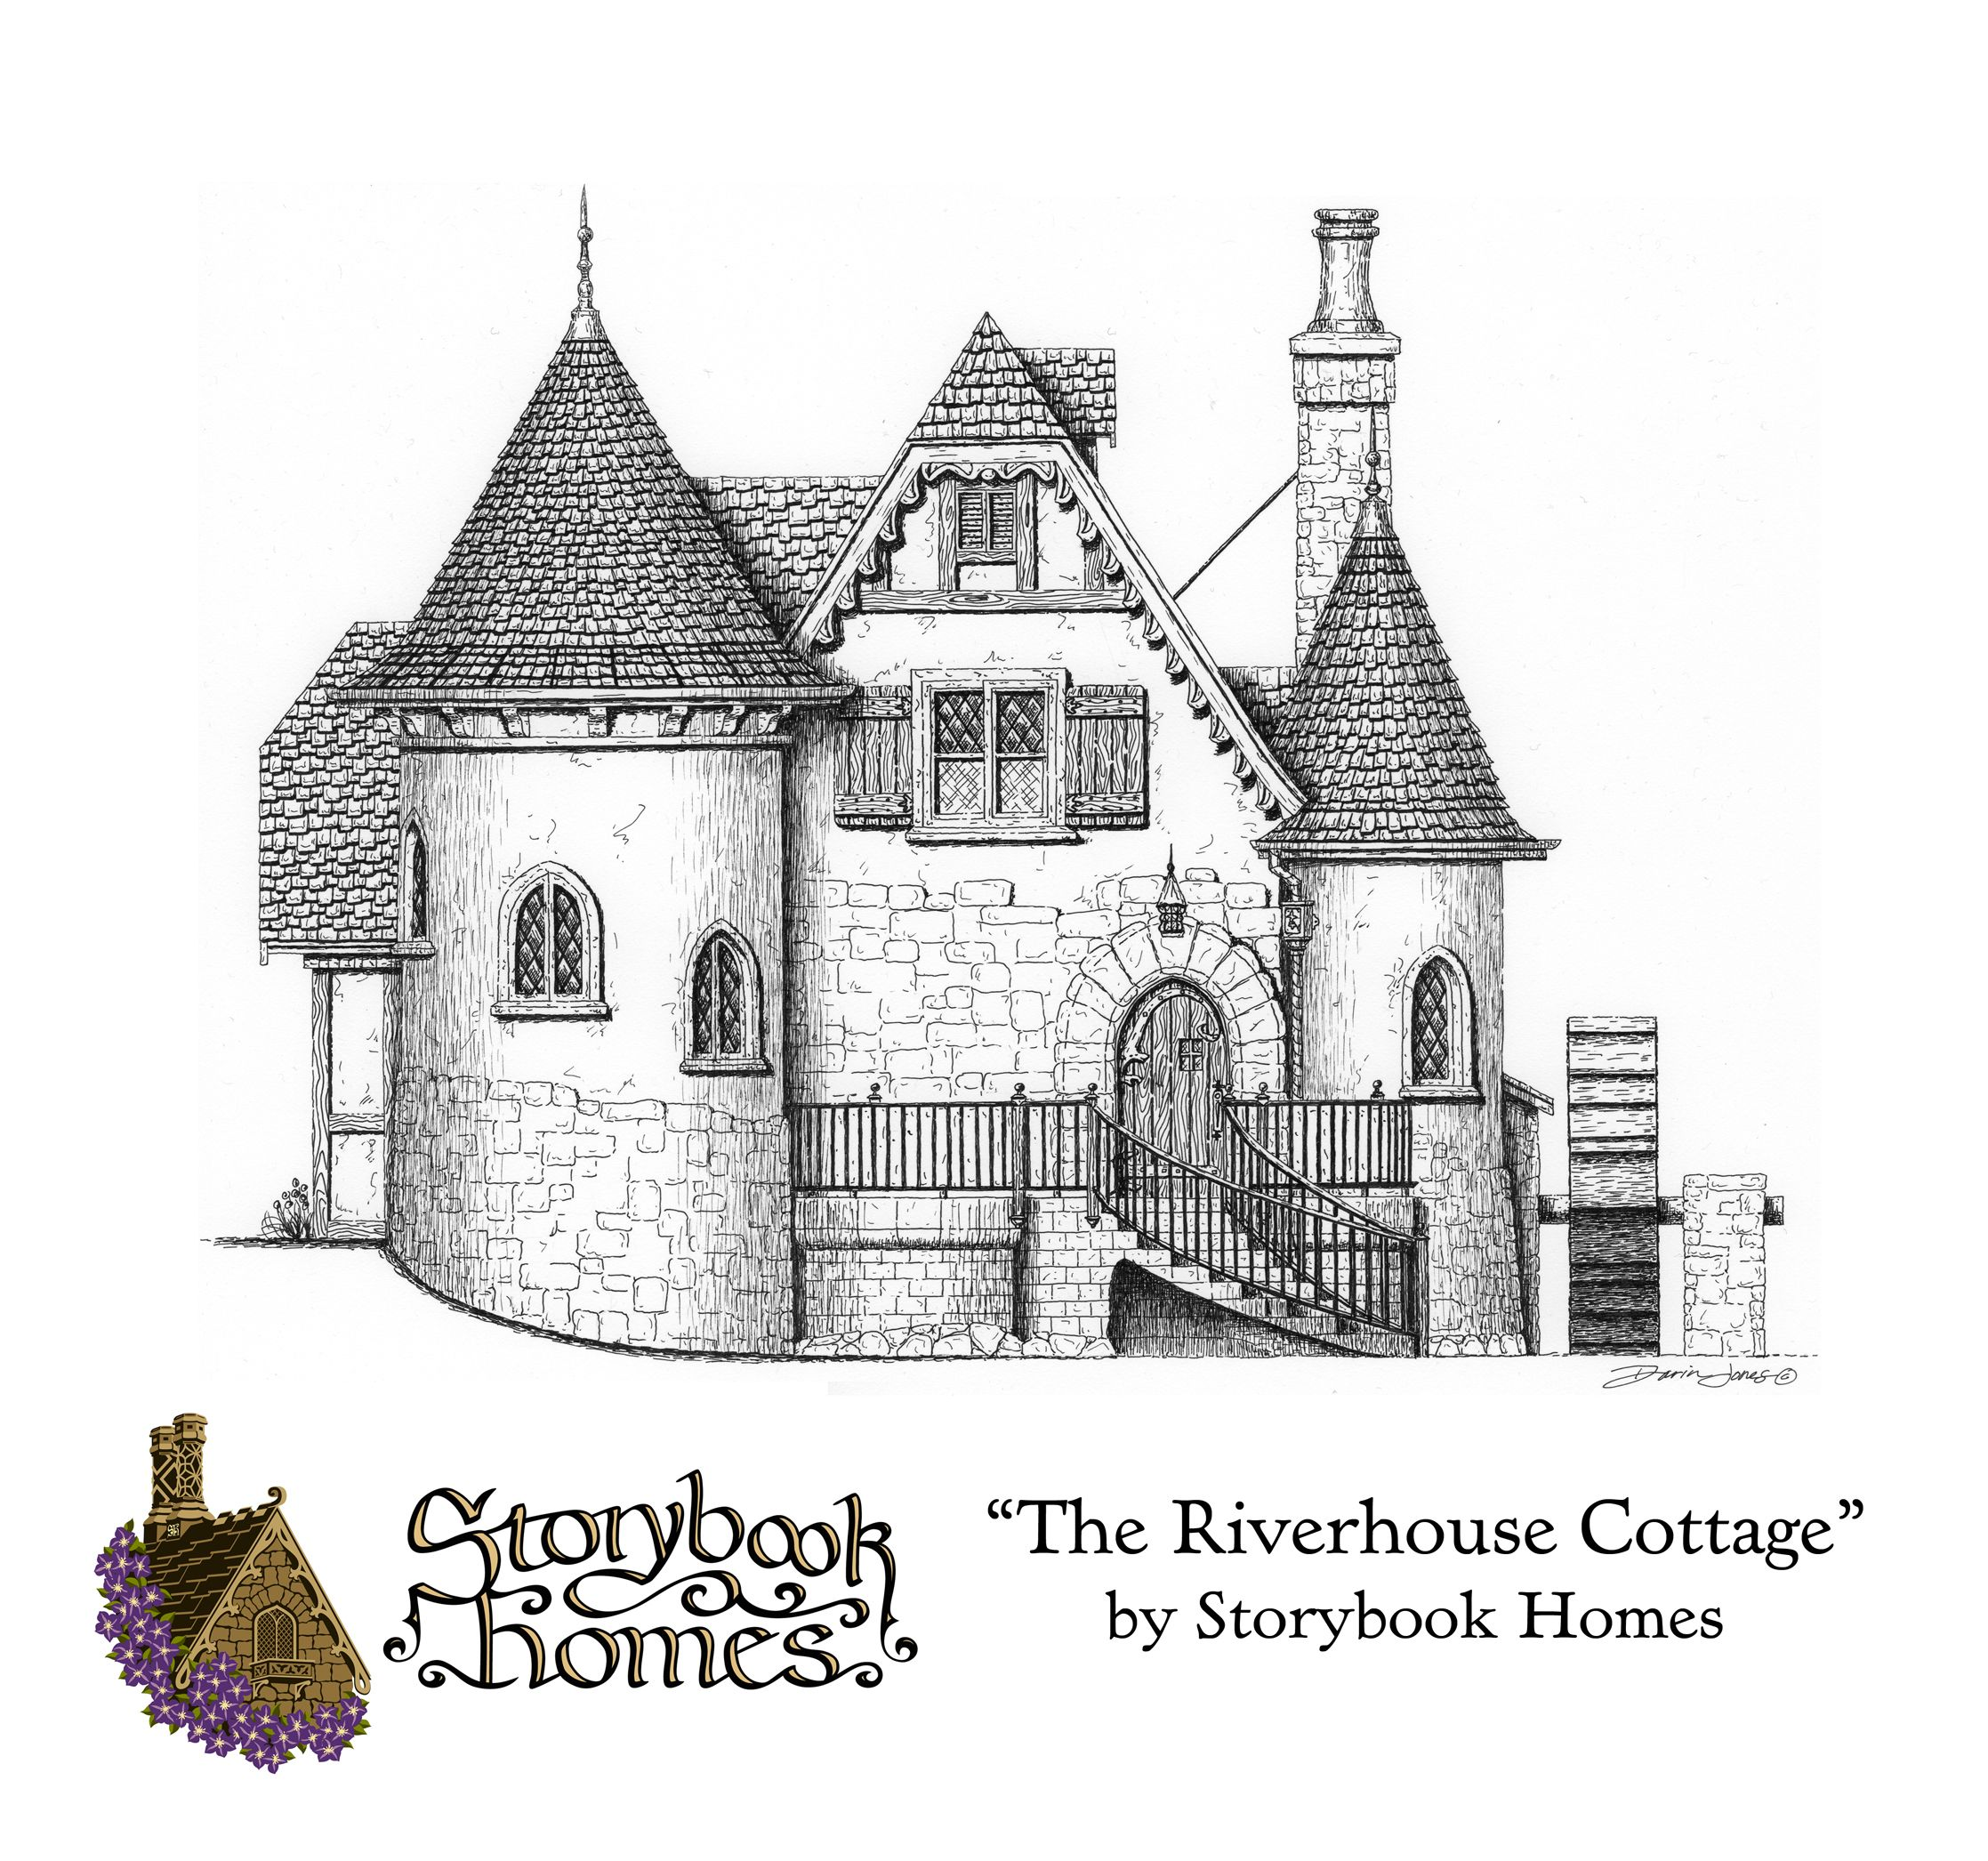 The Riverhouse By Storybook Homes Designed By Samuel Hackwell Andrew Perkins Storybook Homes Storybook Cottage Castle House Plans